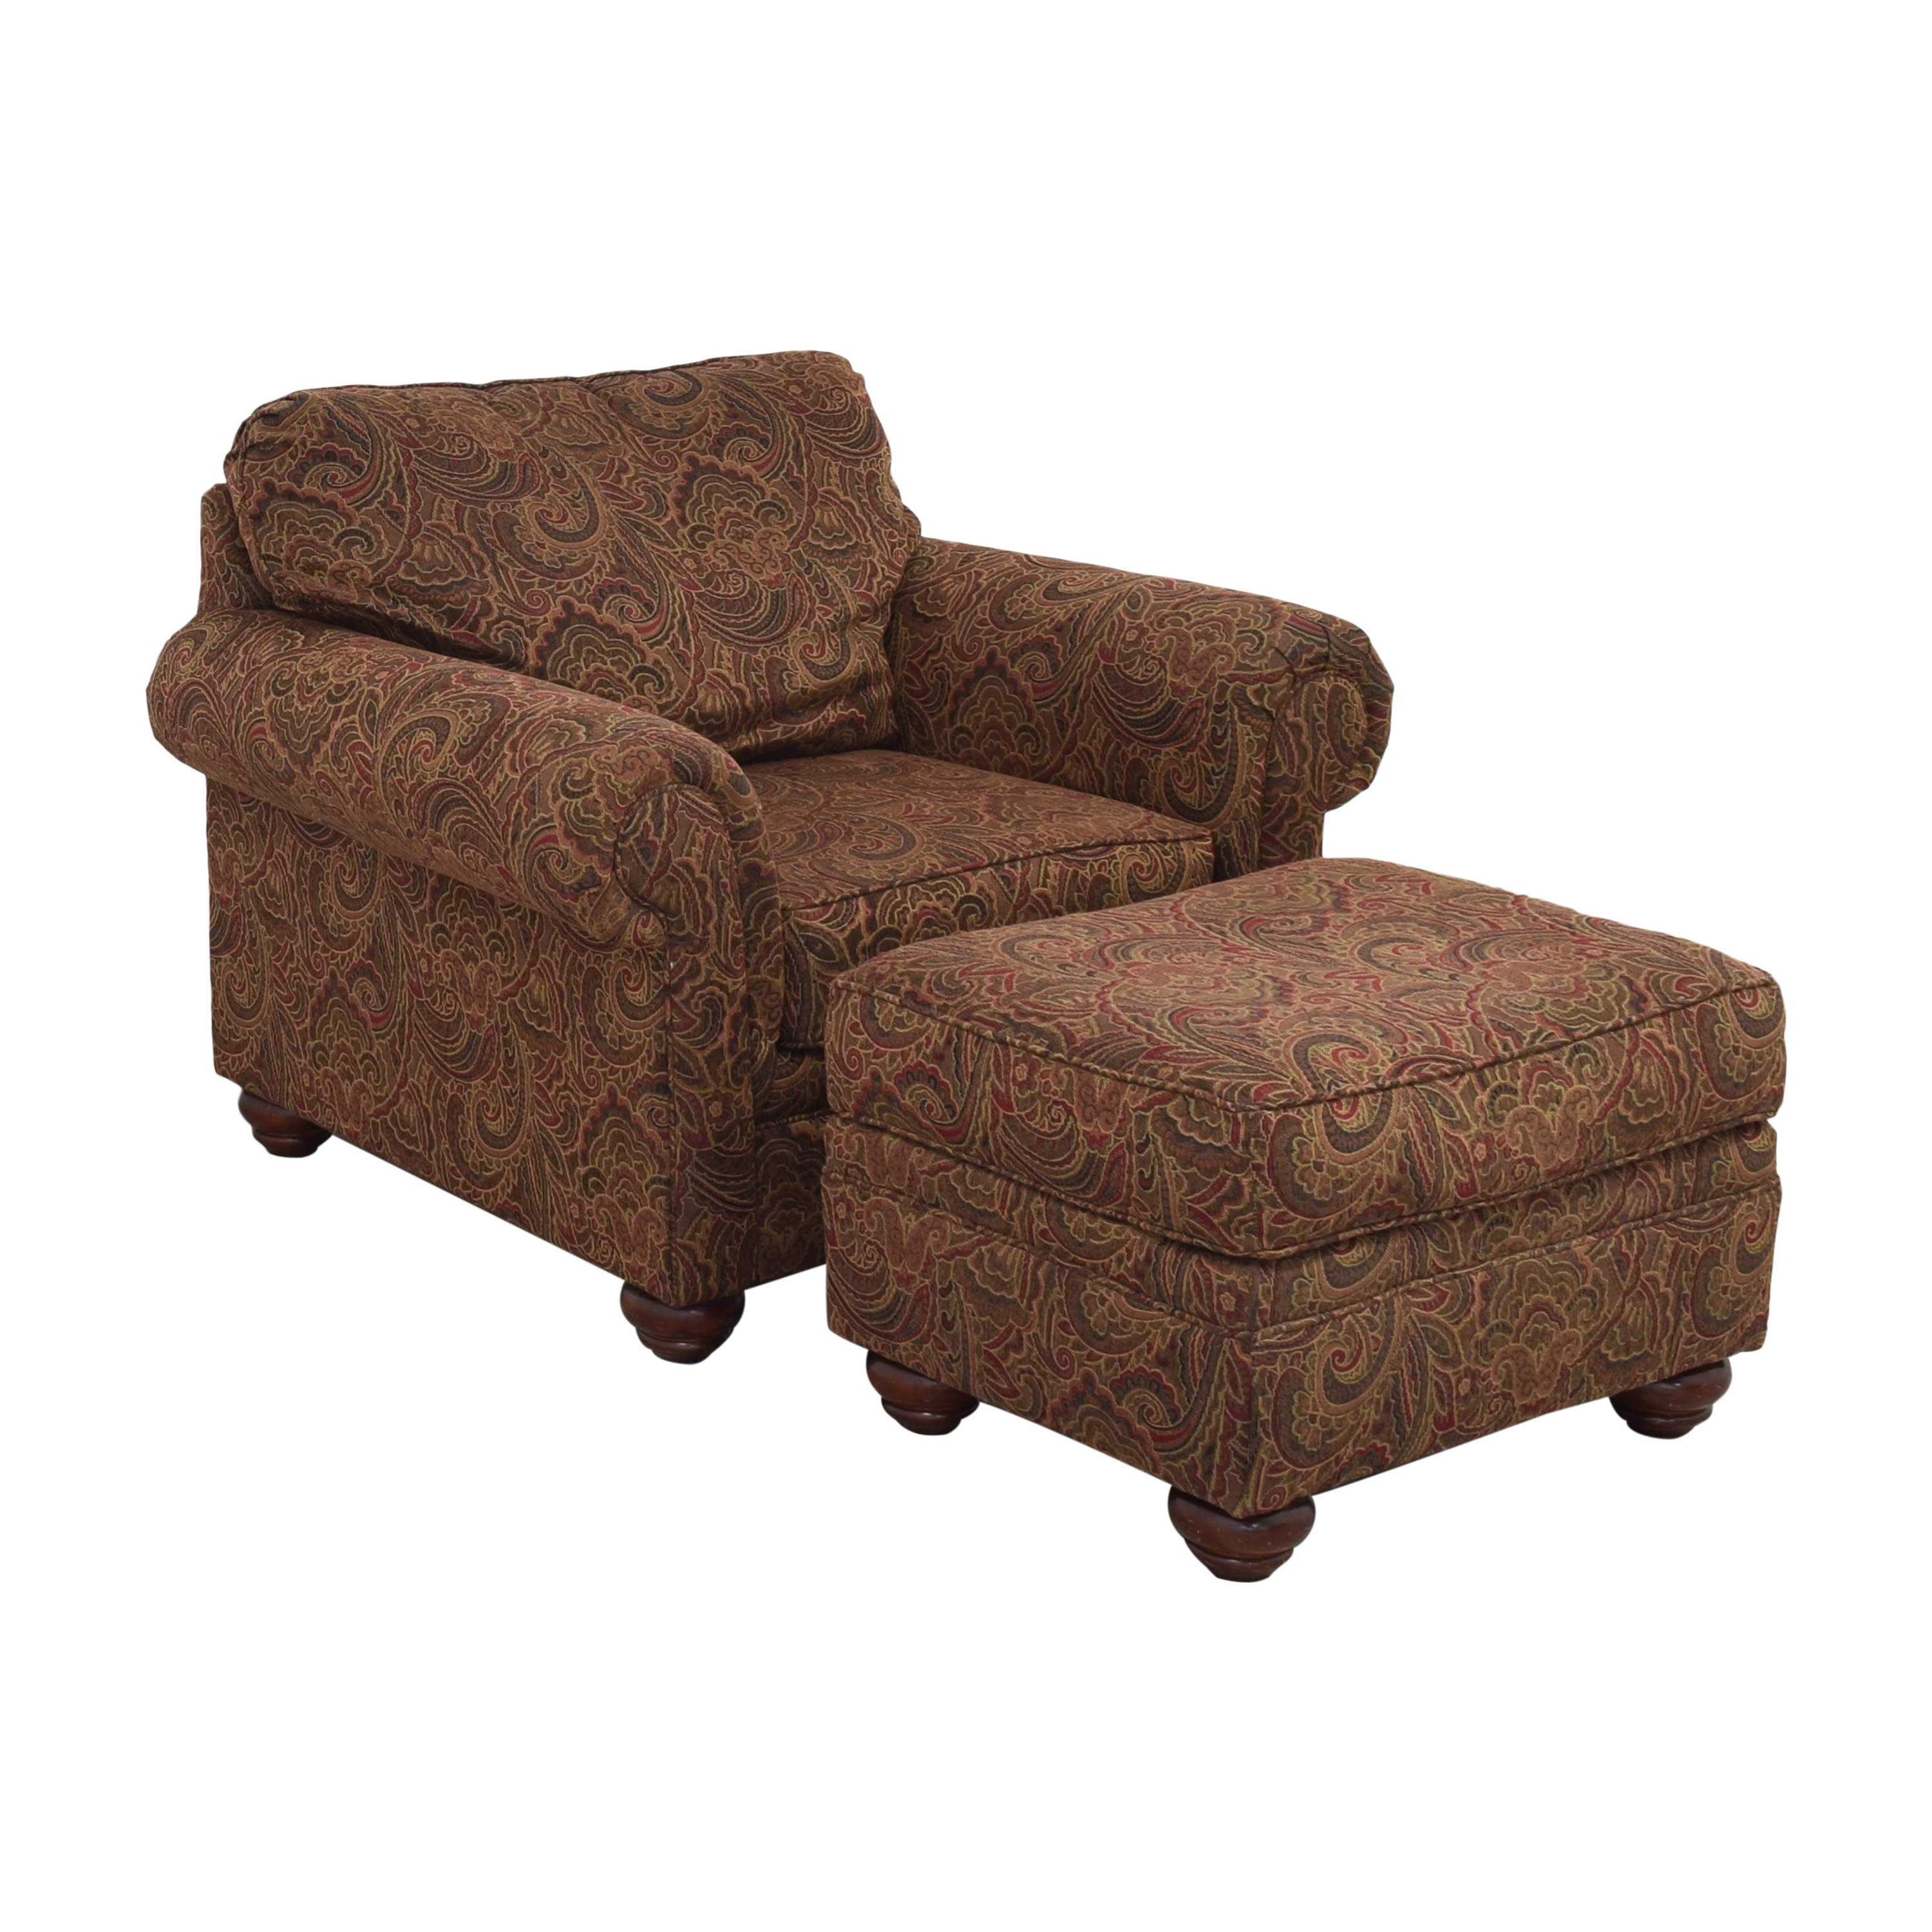 Broyhill Furniture Broyhill Furniture Roll Arm Accent Chair and Ottoman multi